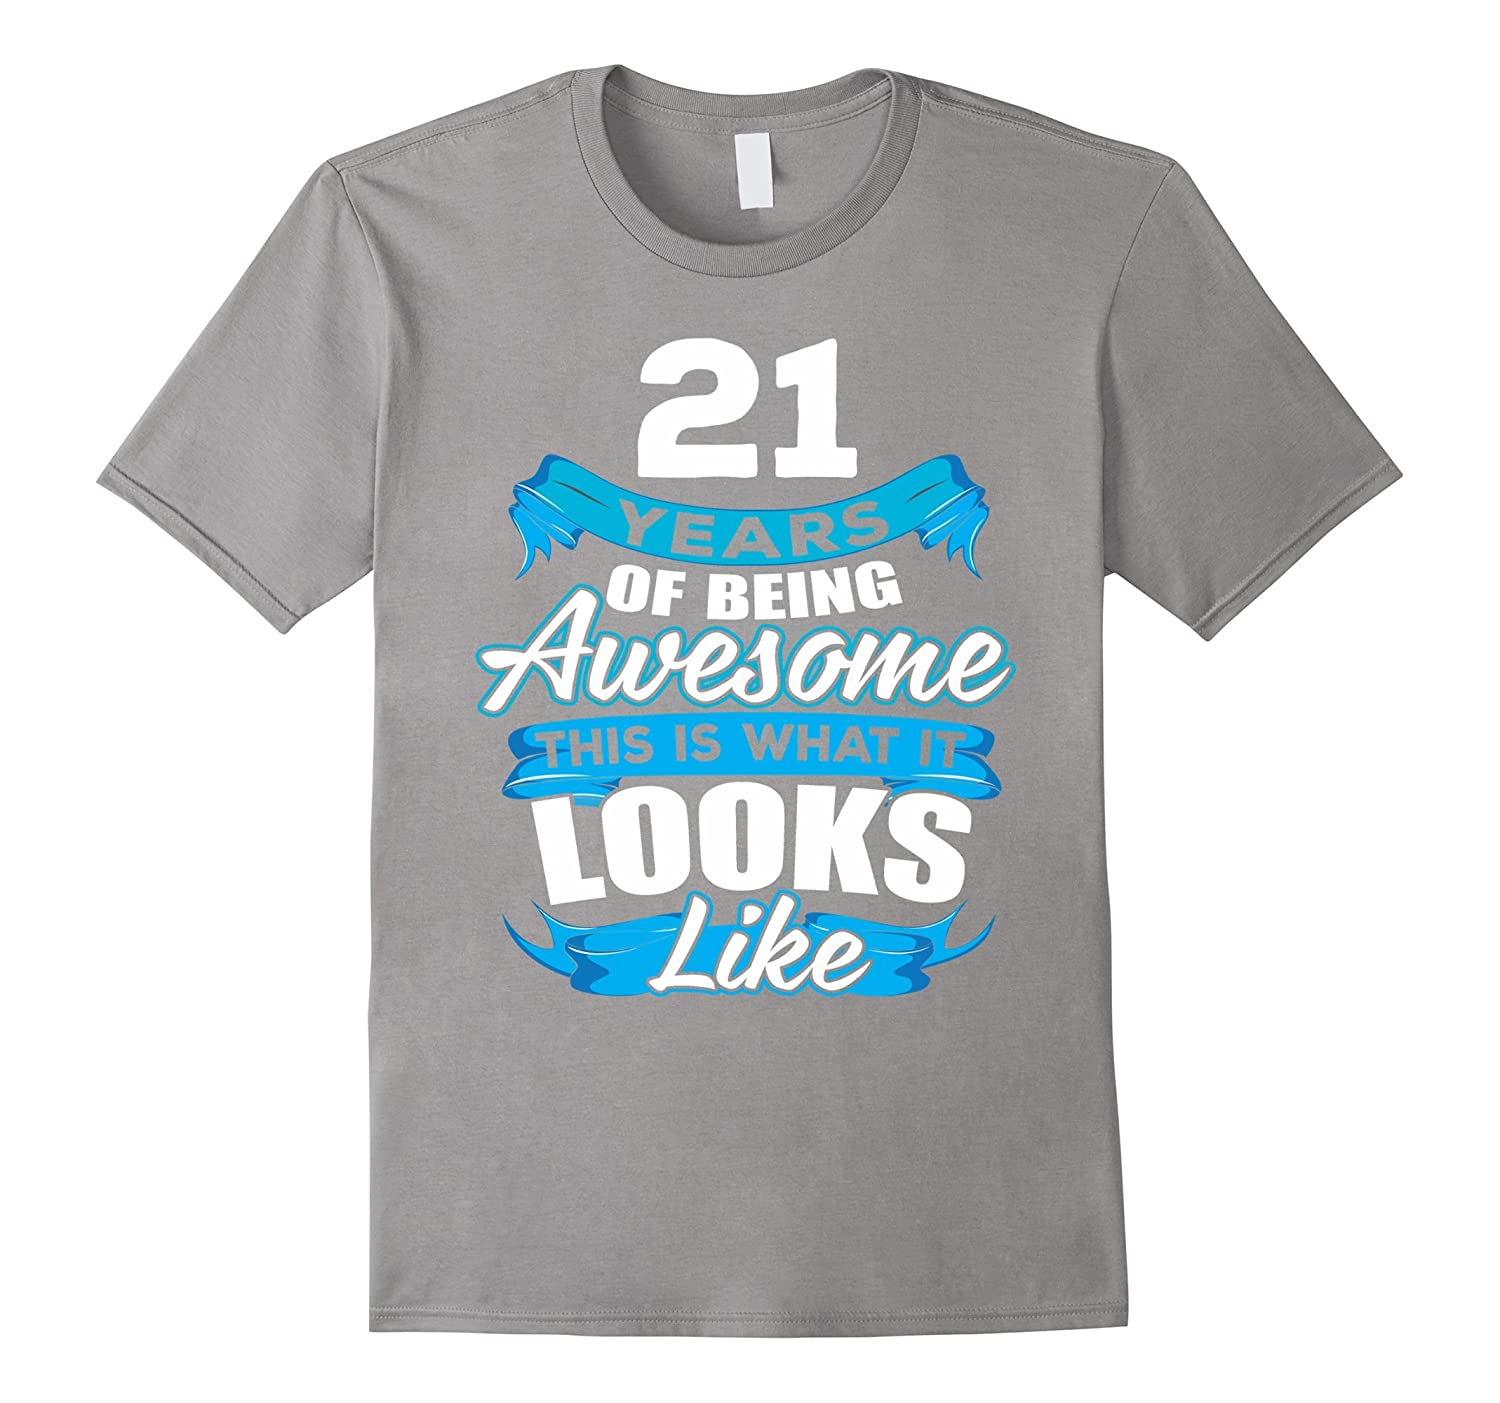 21 Years Old Being Awesome Shirt